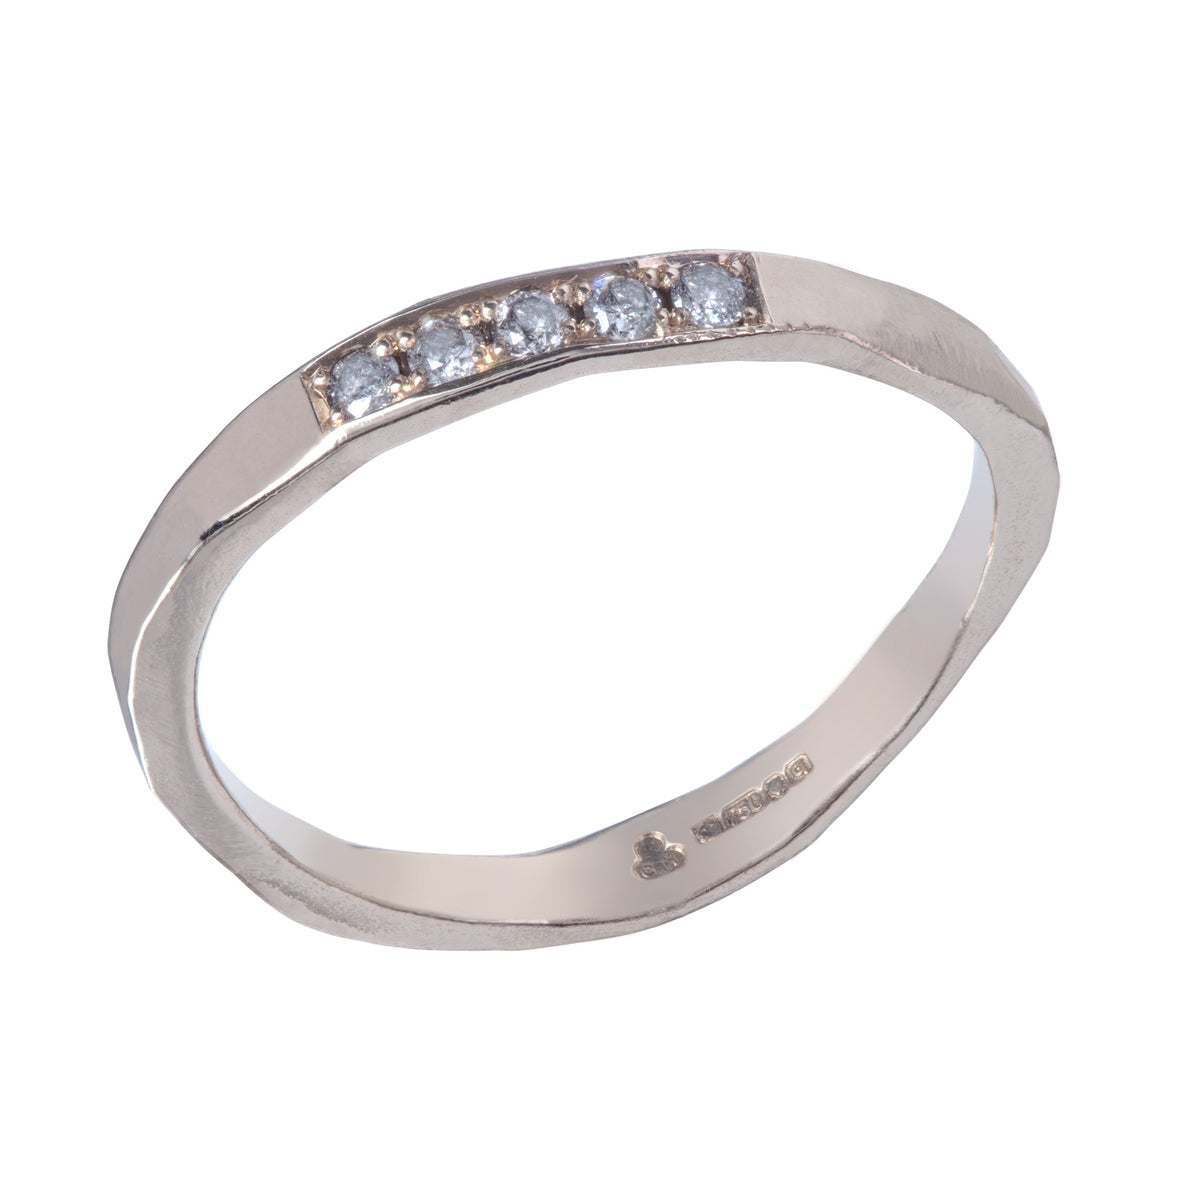 Trust Ring with 5 Grey Diamonds in Gold